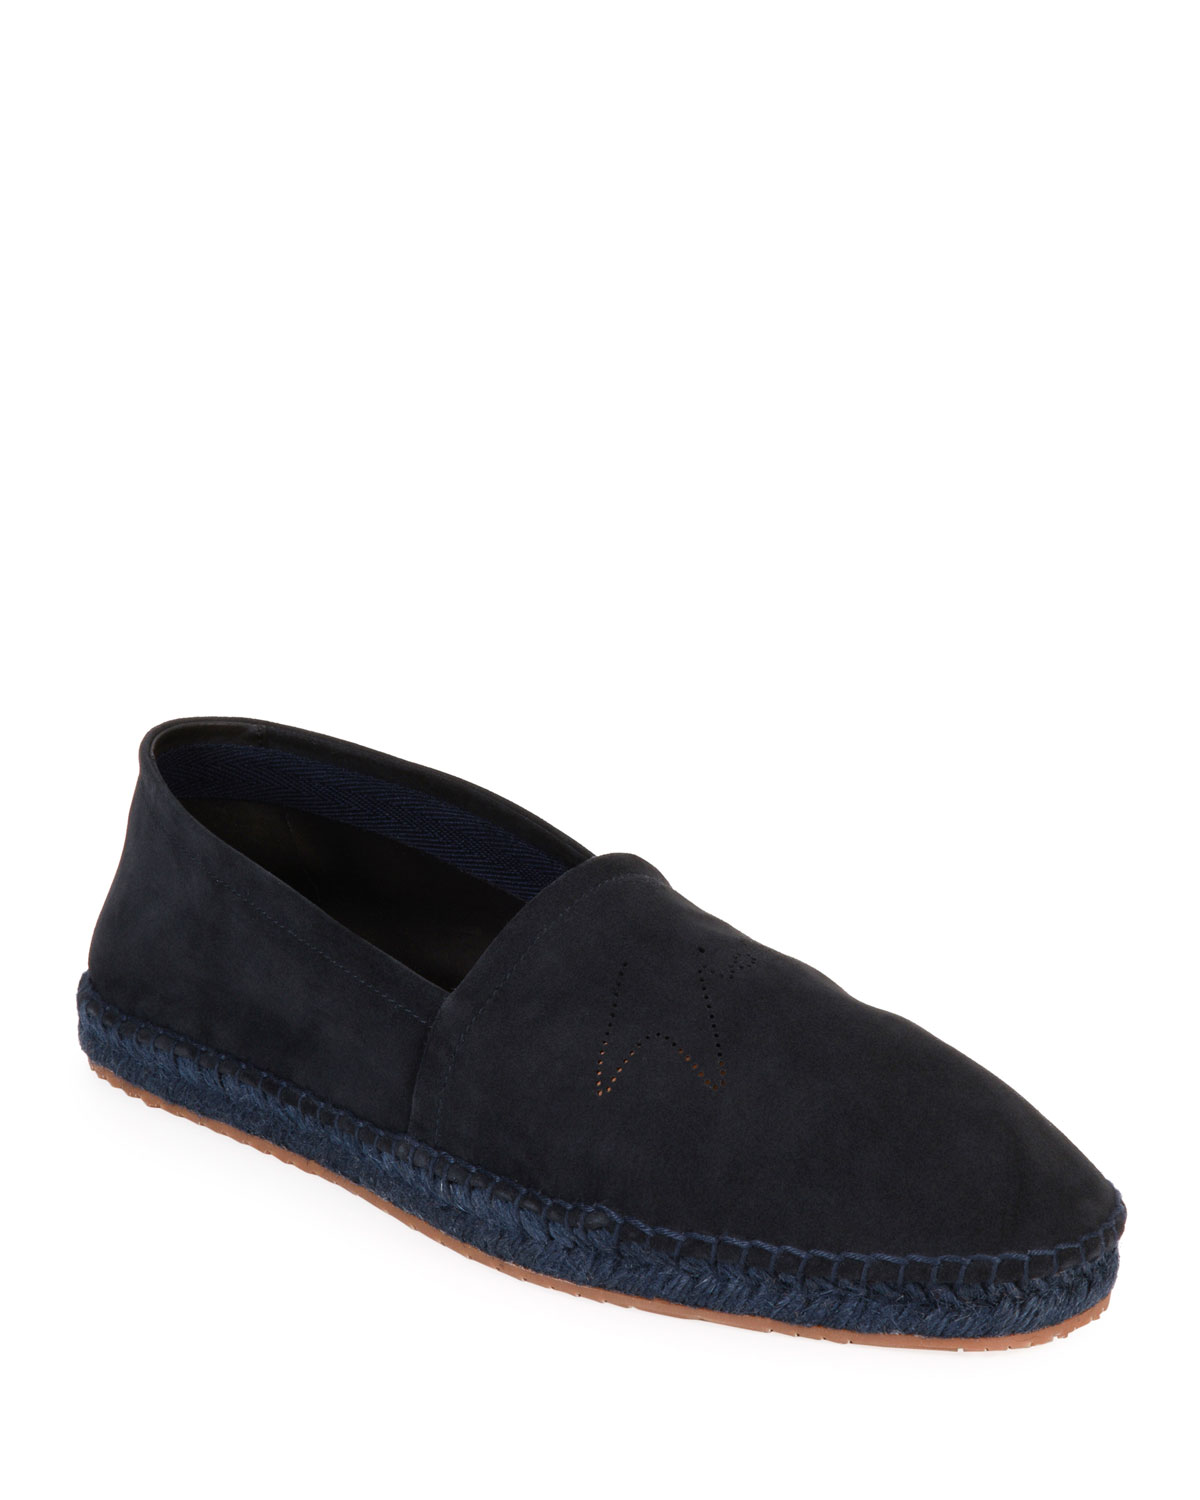 Giorgio Armani Men's Suede Perforated-Logo Espadrilles